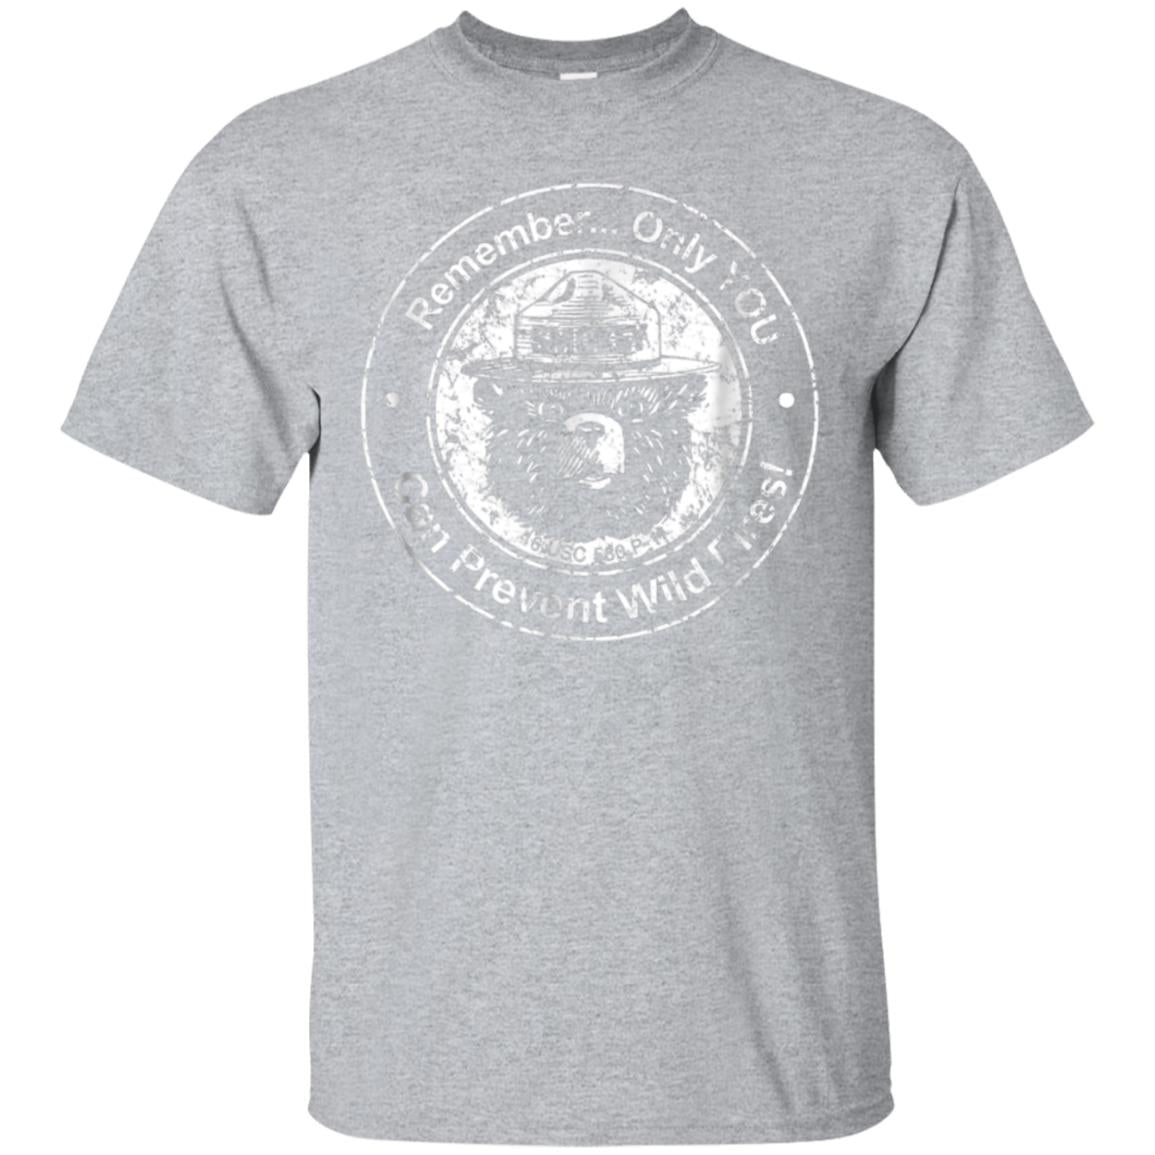 Smokey Bear Only You can Prevent etc - Seal T-shirt 99promocode